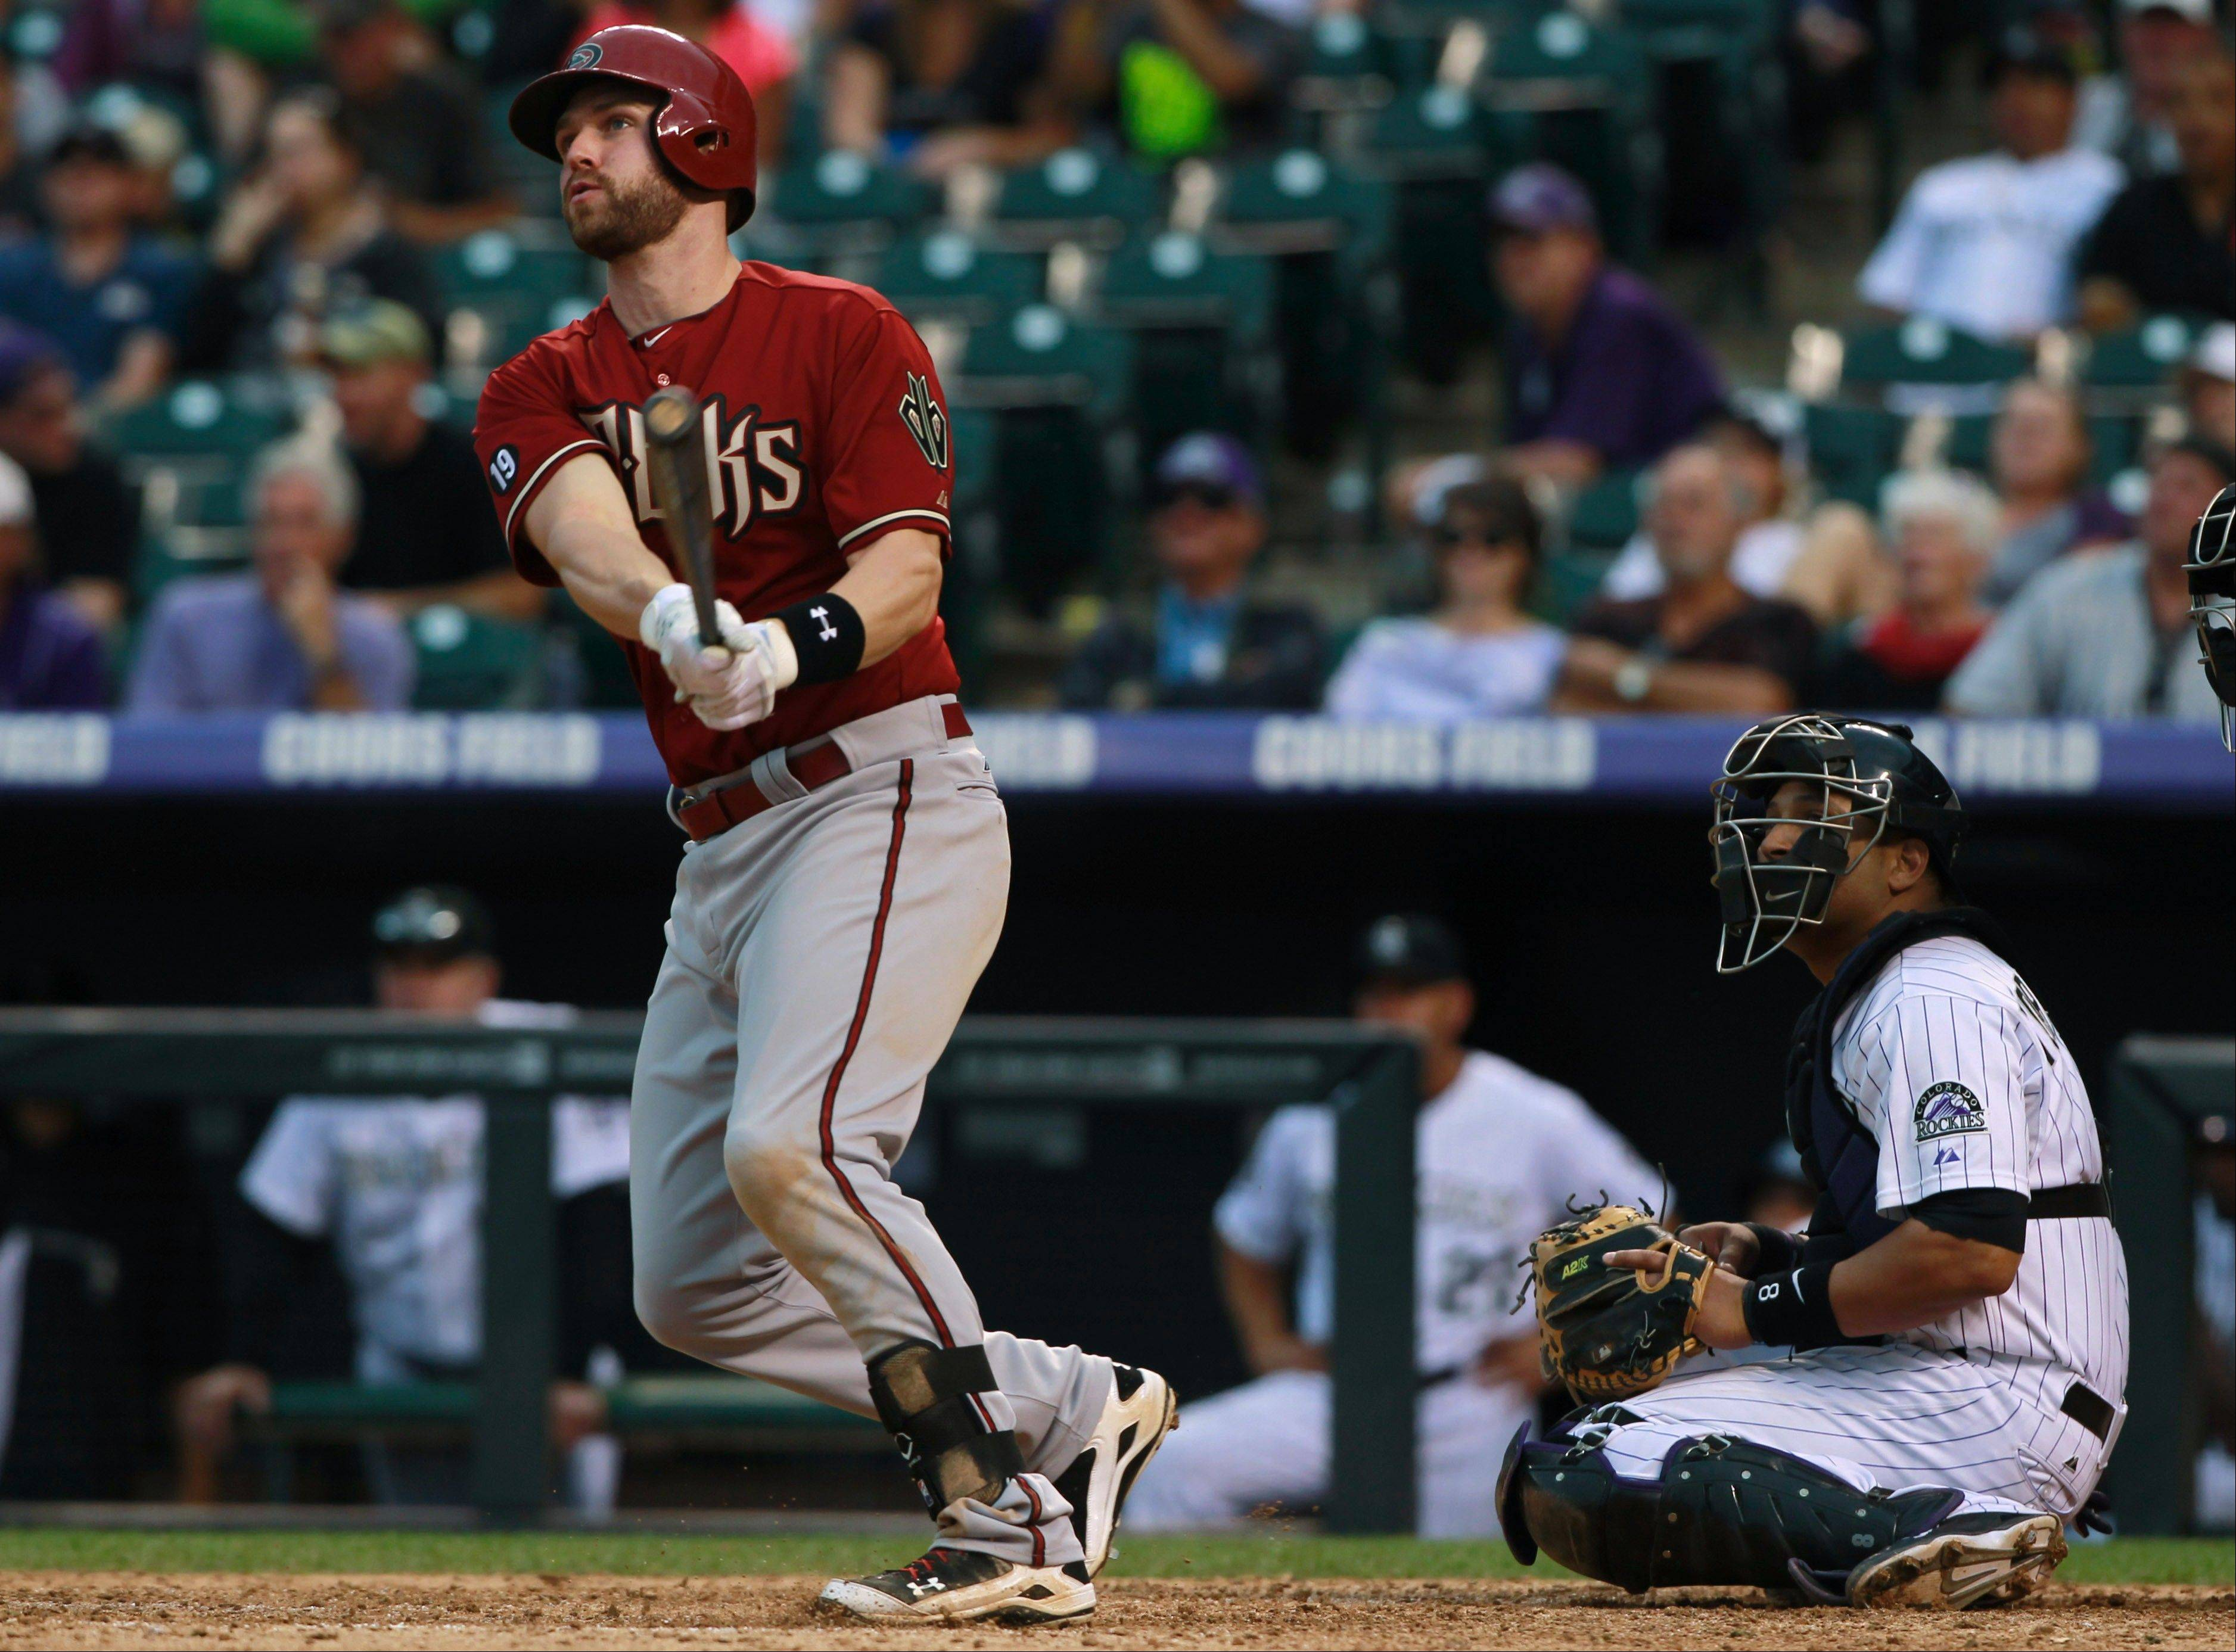 The White Sox have added 22-year-old third baseman Matt Davidson, above, to their roster after trading closer Addison Reed to the Arizona Diamondbacks on Monday.